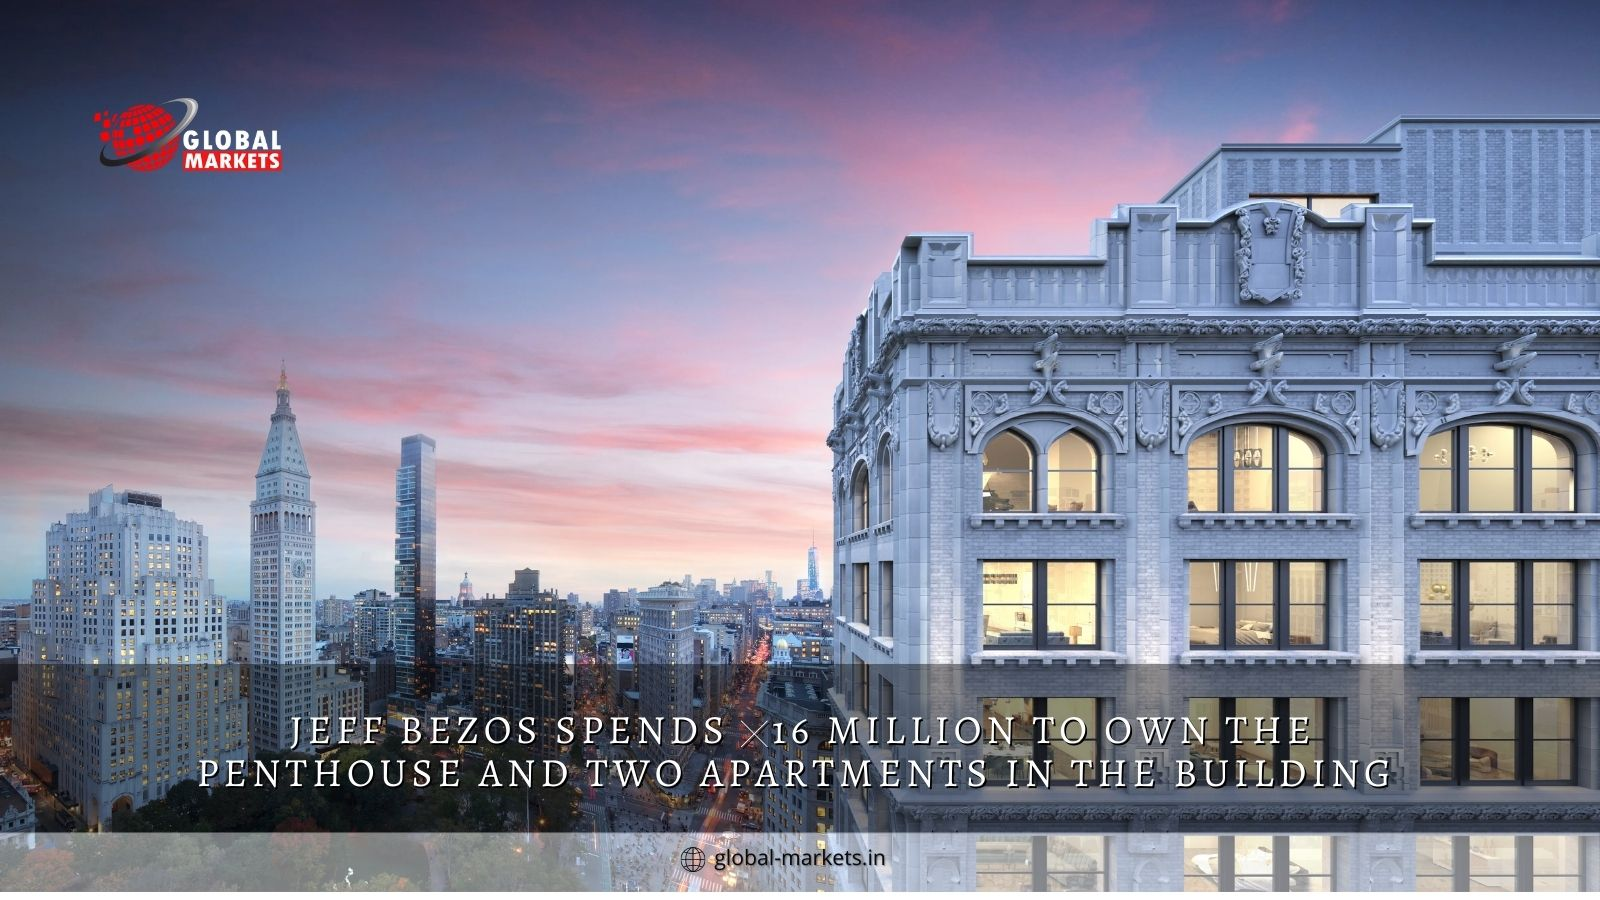 Jeff Bezos spends $16 Million to owns the penthouse and two apartments in the building